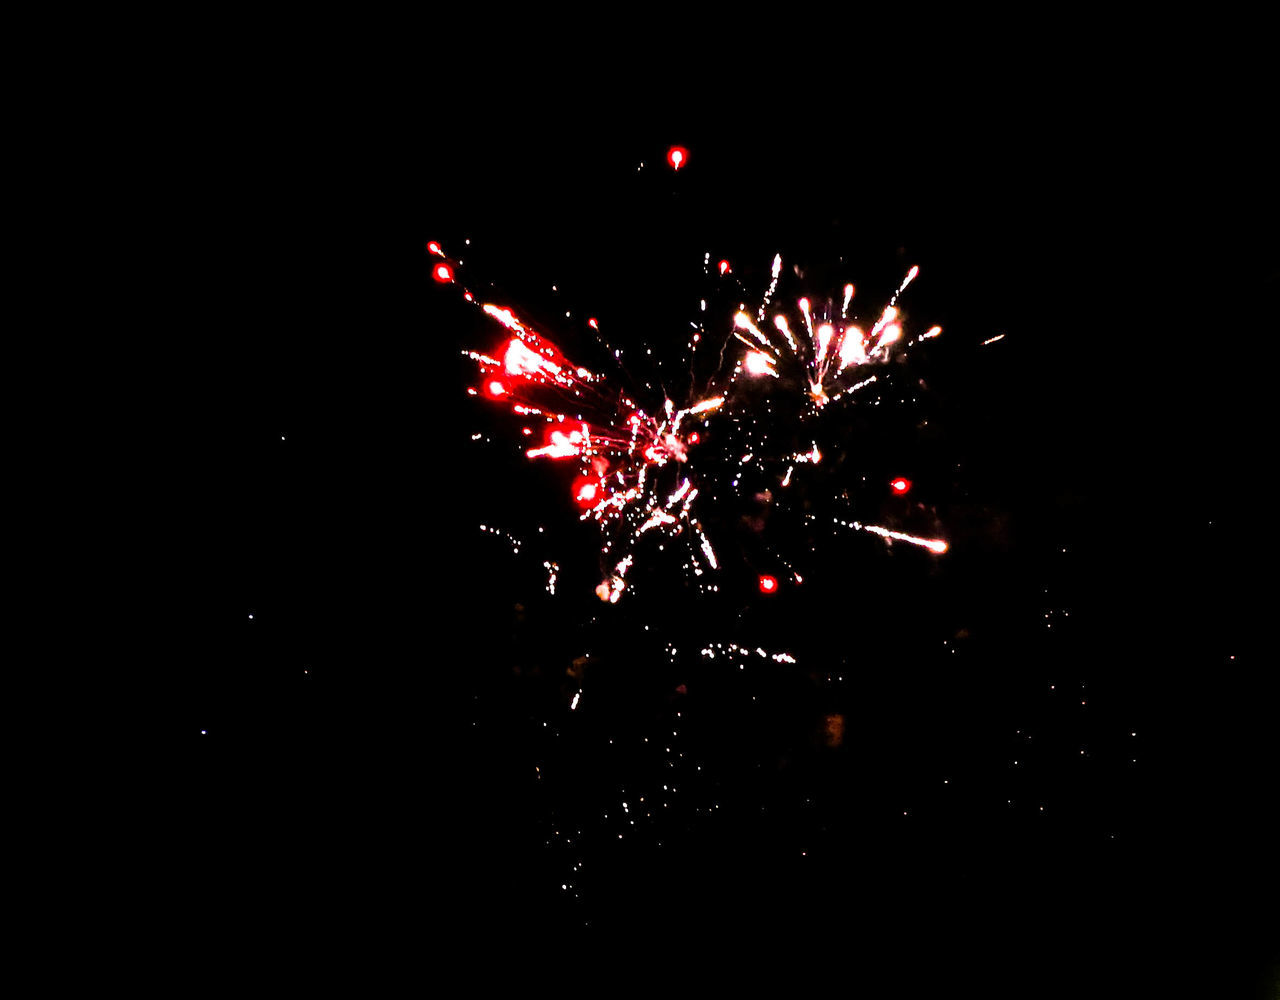 celebration, firework display, night, firework - man made object, exploding, arts culture and entertainment, event, motion, low angle view, long exposure, glowing, outdoors, no people, blurred motion, firework, red, illuminated, clear sky, multi colored, sky, high